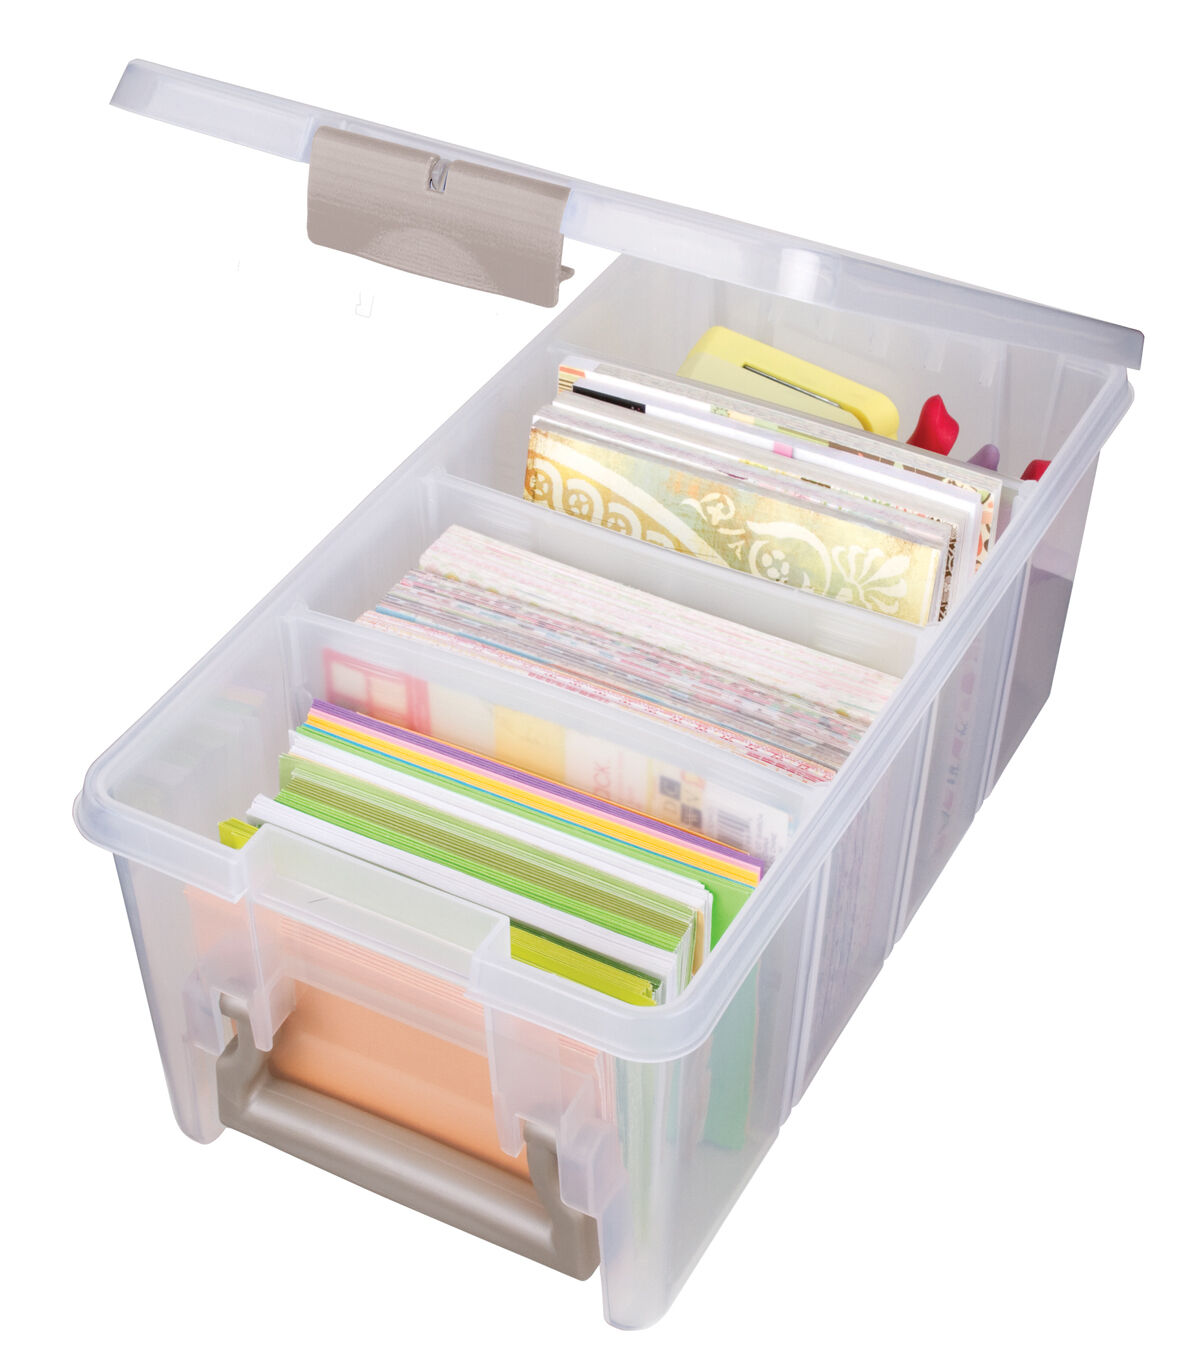 ArtBin Super SEMI.  sc 1 st  Joann & Plastic Storage - Plastic Drawers Bins and Boxes | JOANN